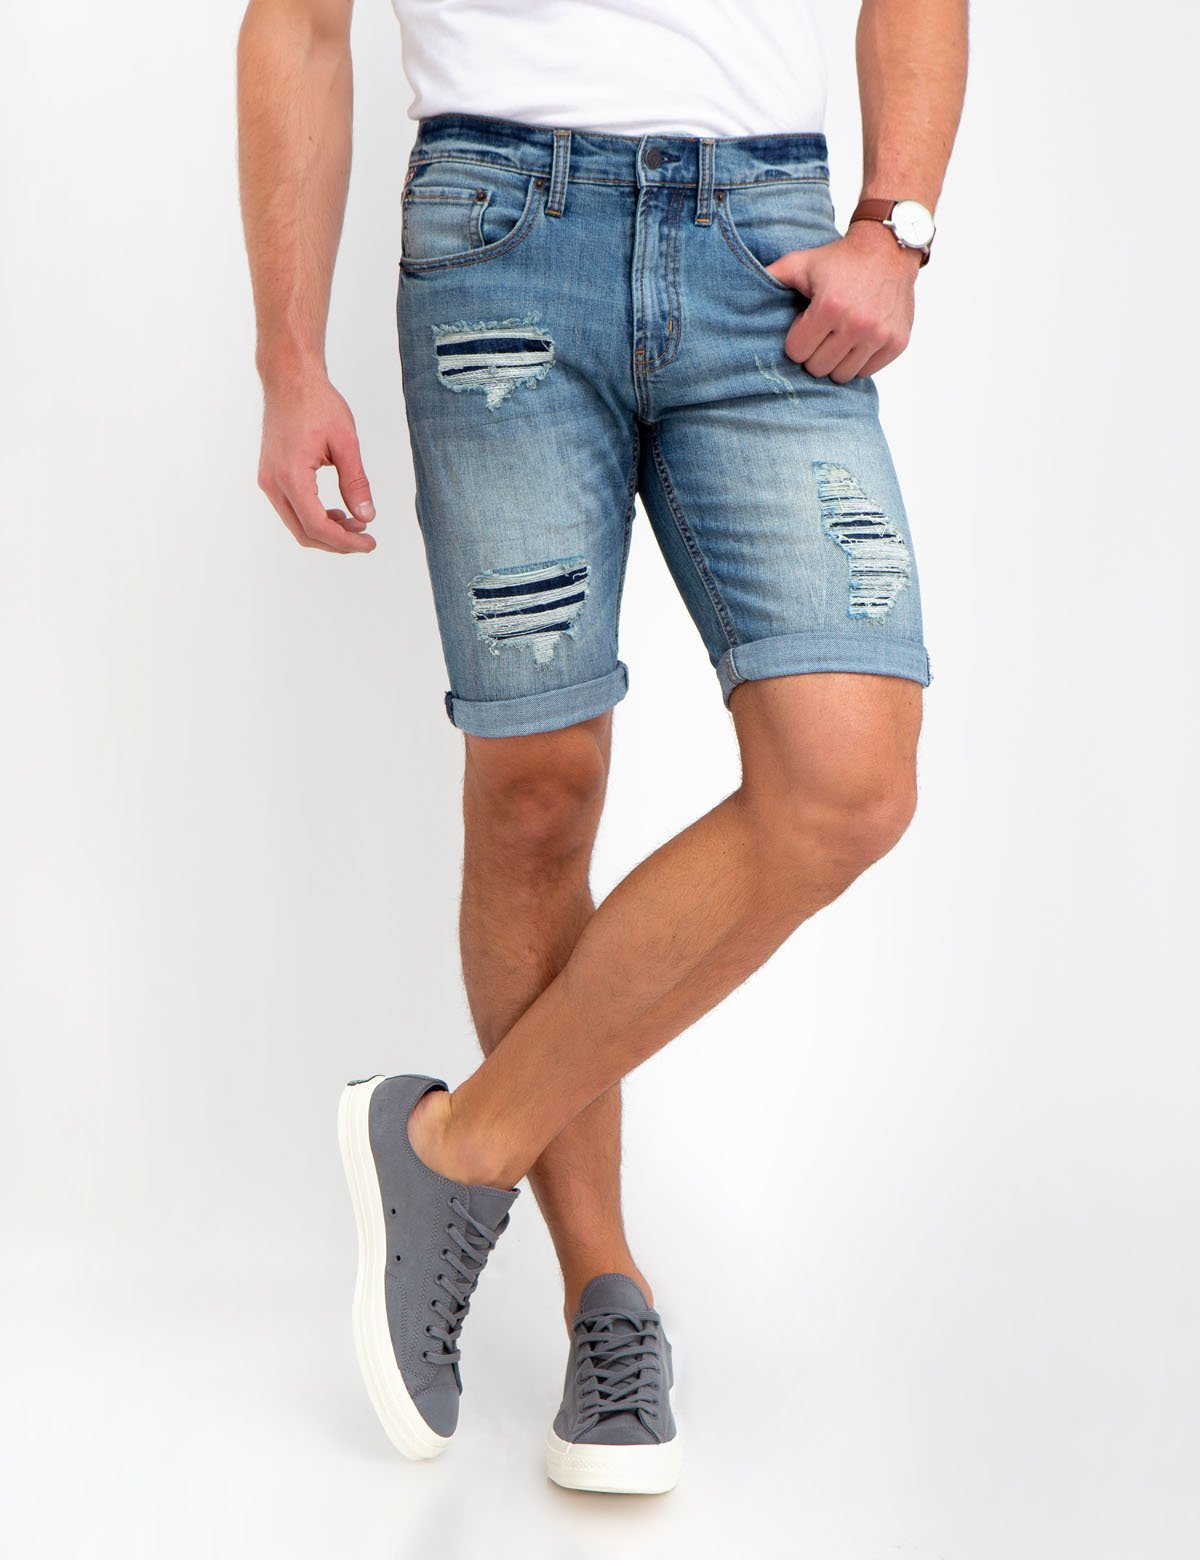 076329bfa43097 How To Wear Dress Shoes With Shorts